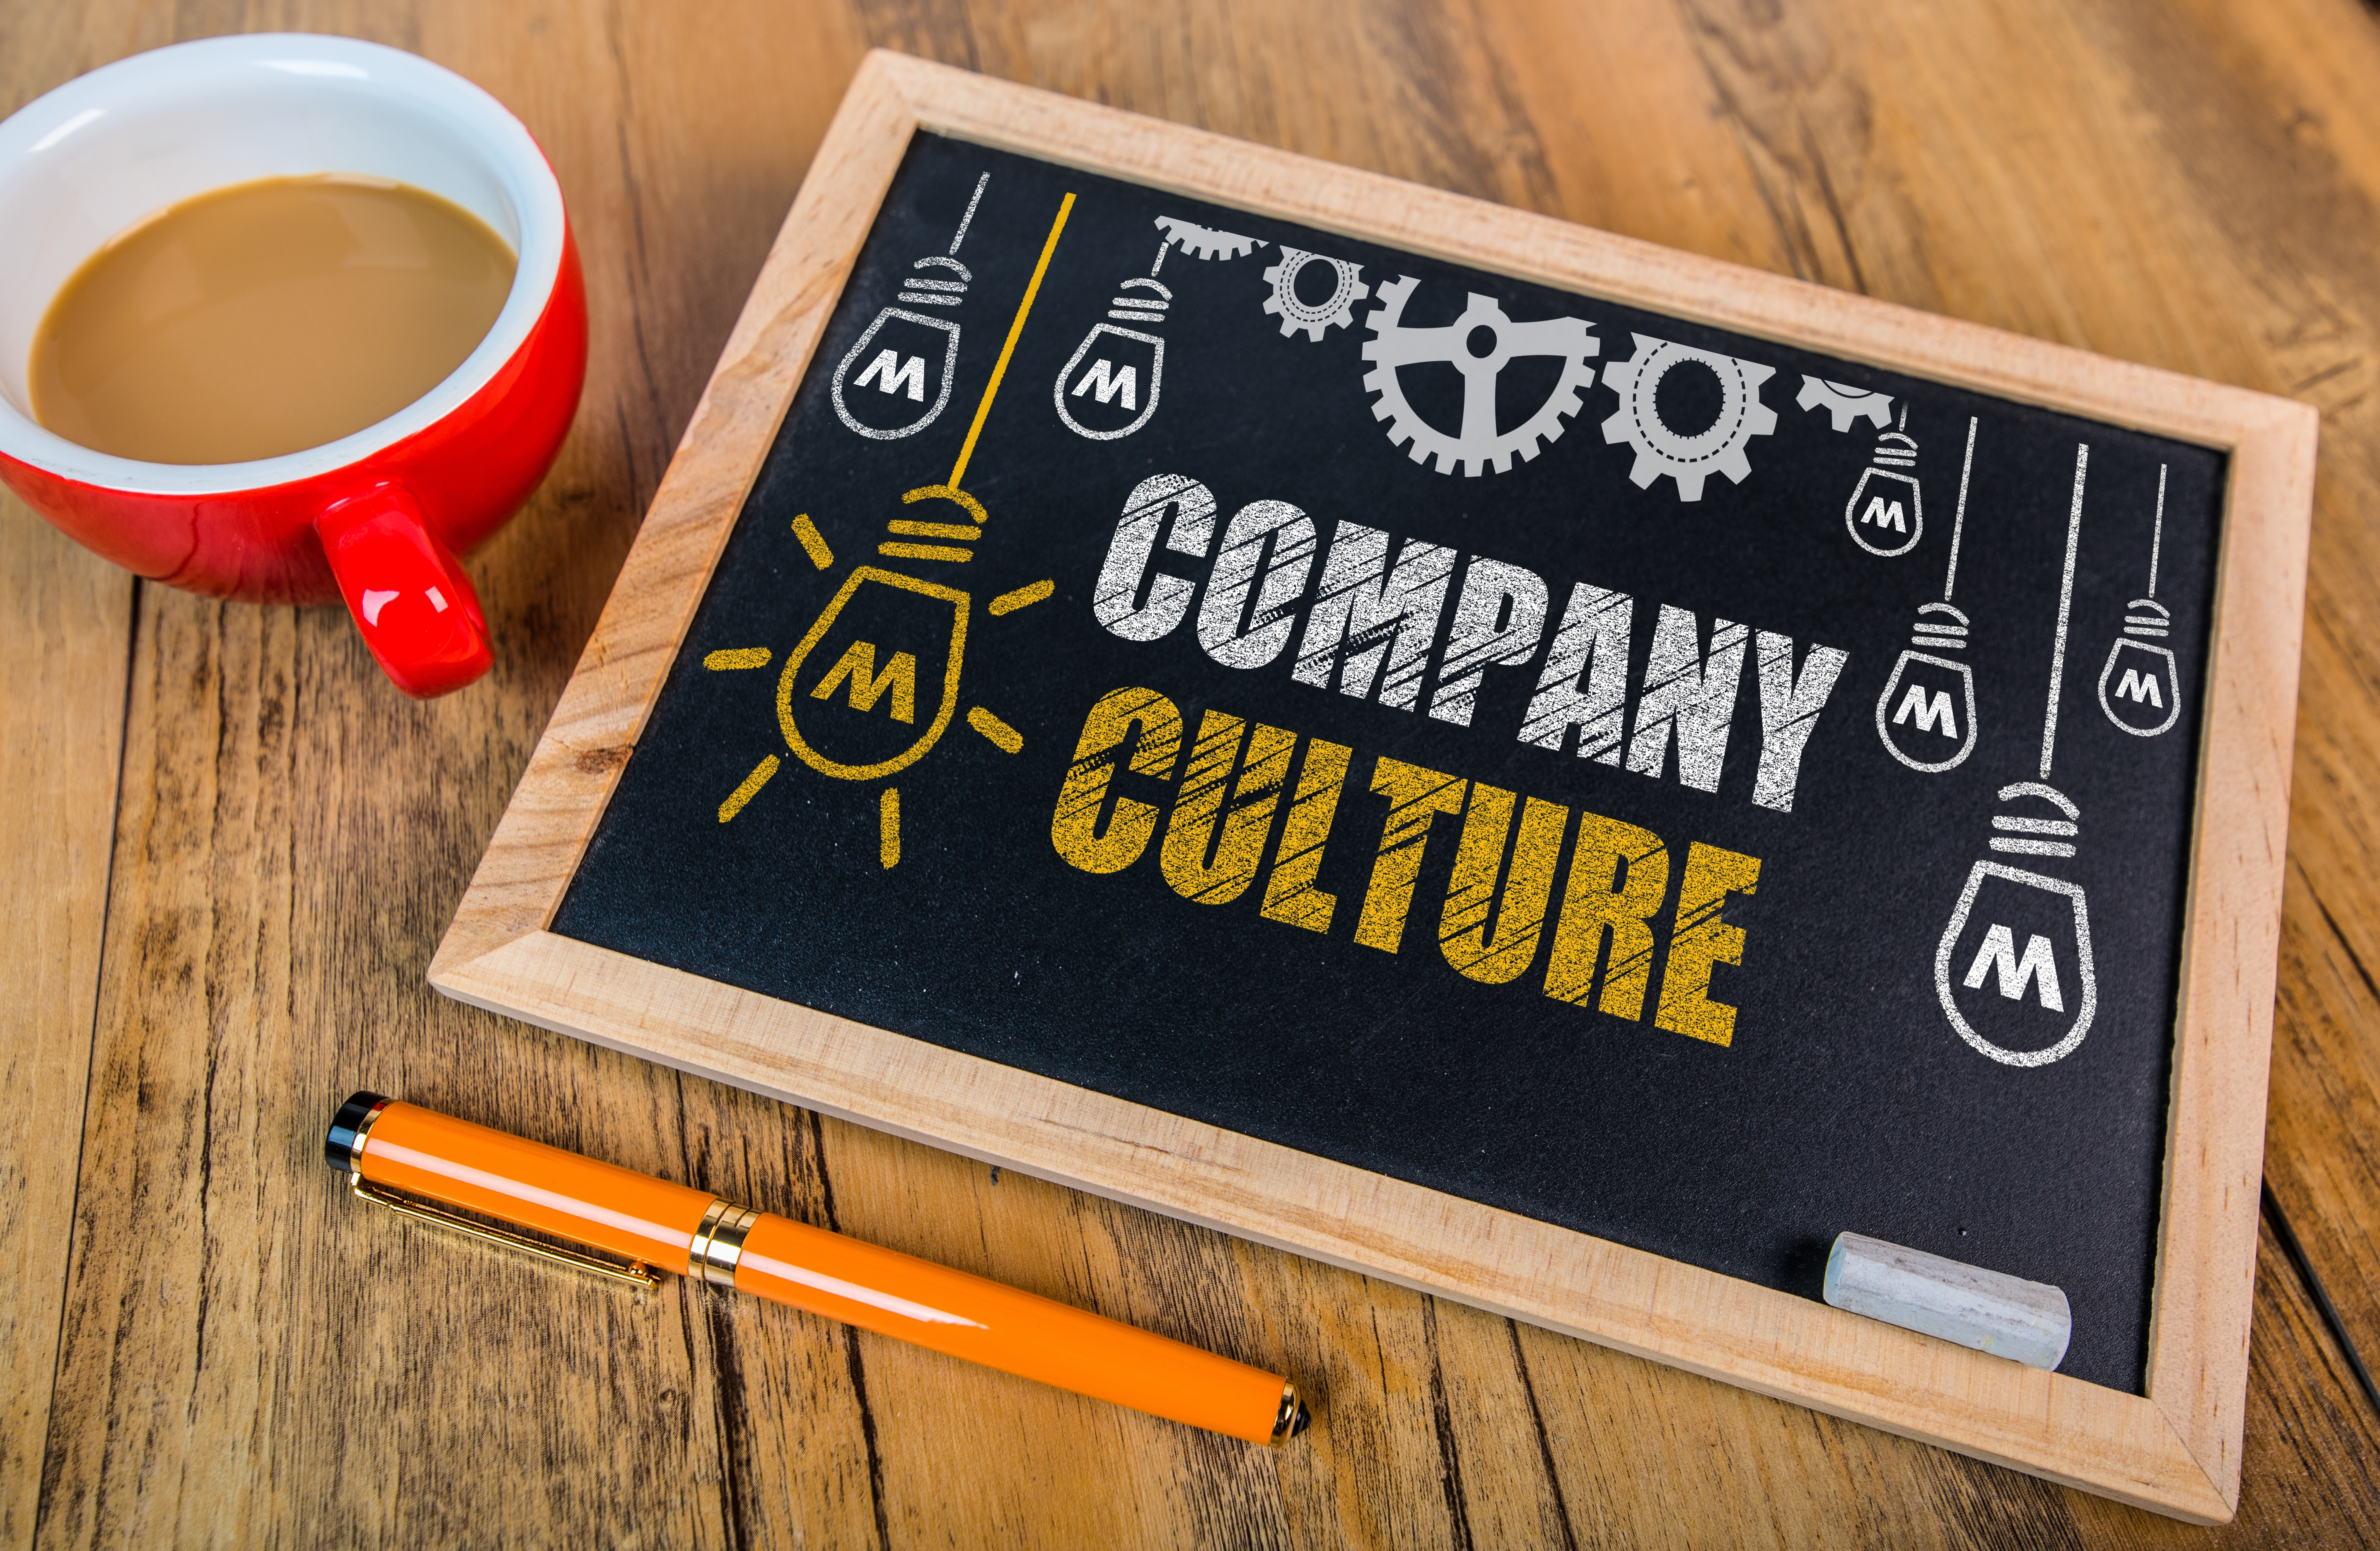 Hiring for Cultural Fit in the Workplace